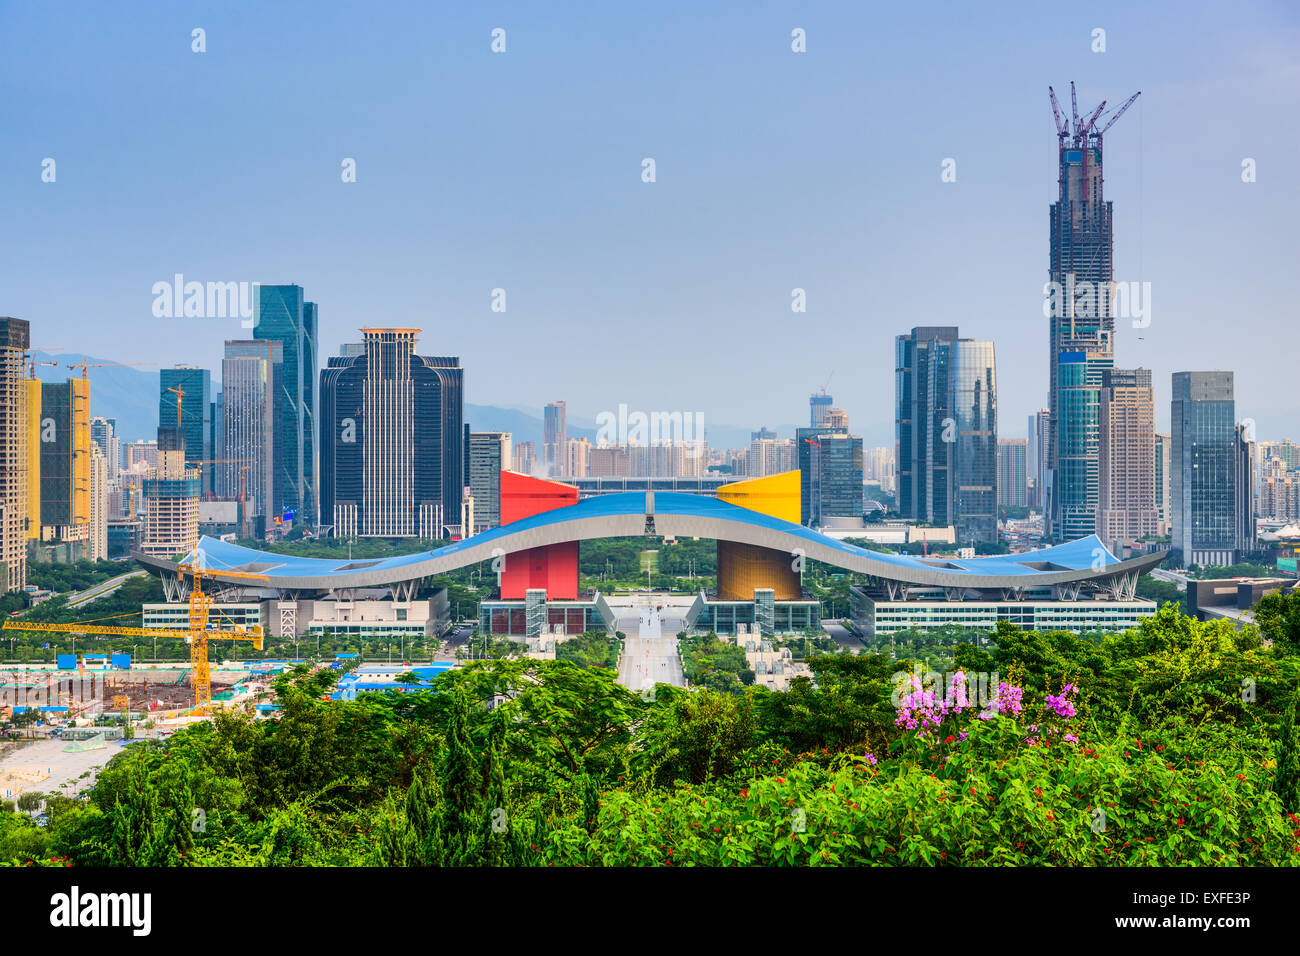 Shenzhen, Chine sur les toits de la ville dans le quartier de Civic Center. Photo Stock